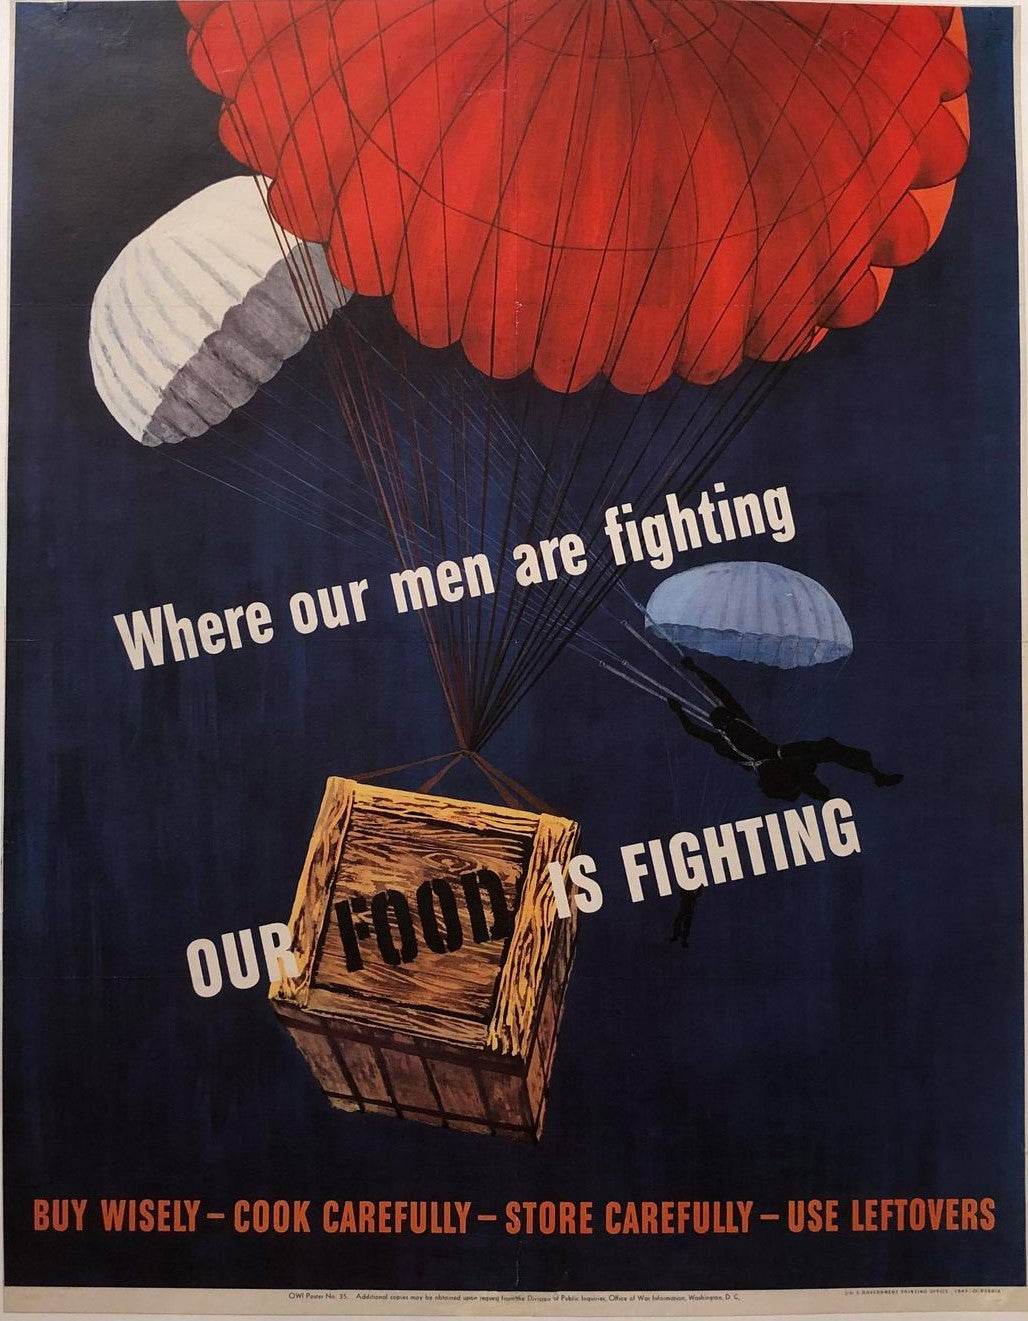 Where our men are fighting OUR FOOD IS FIGHTING